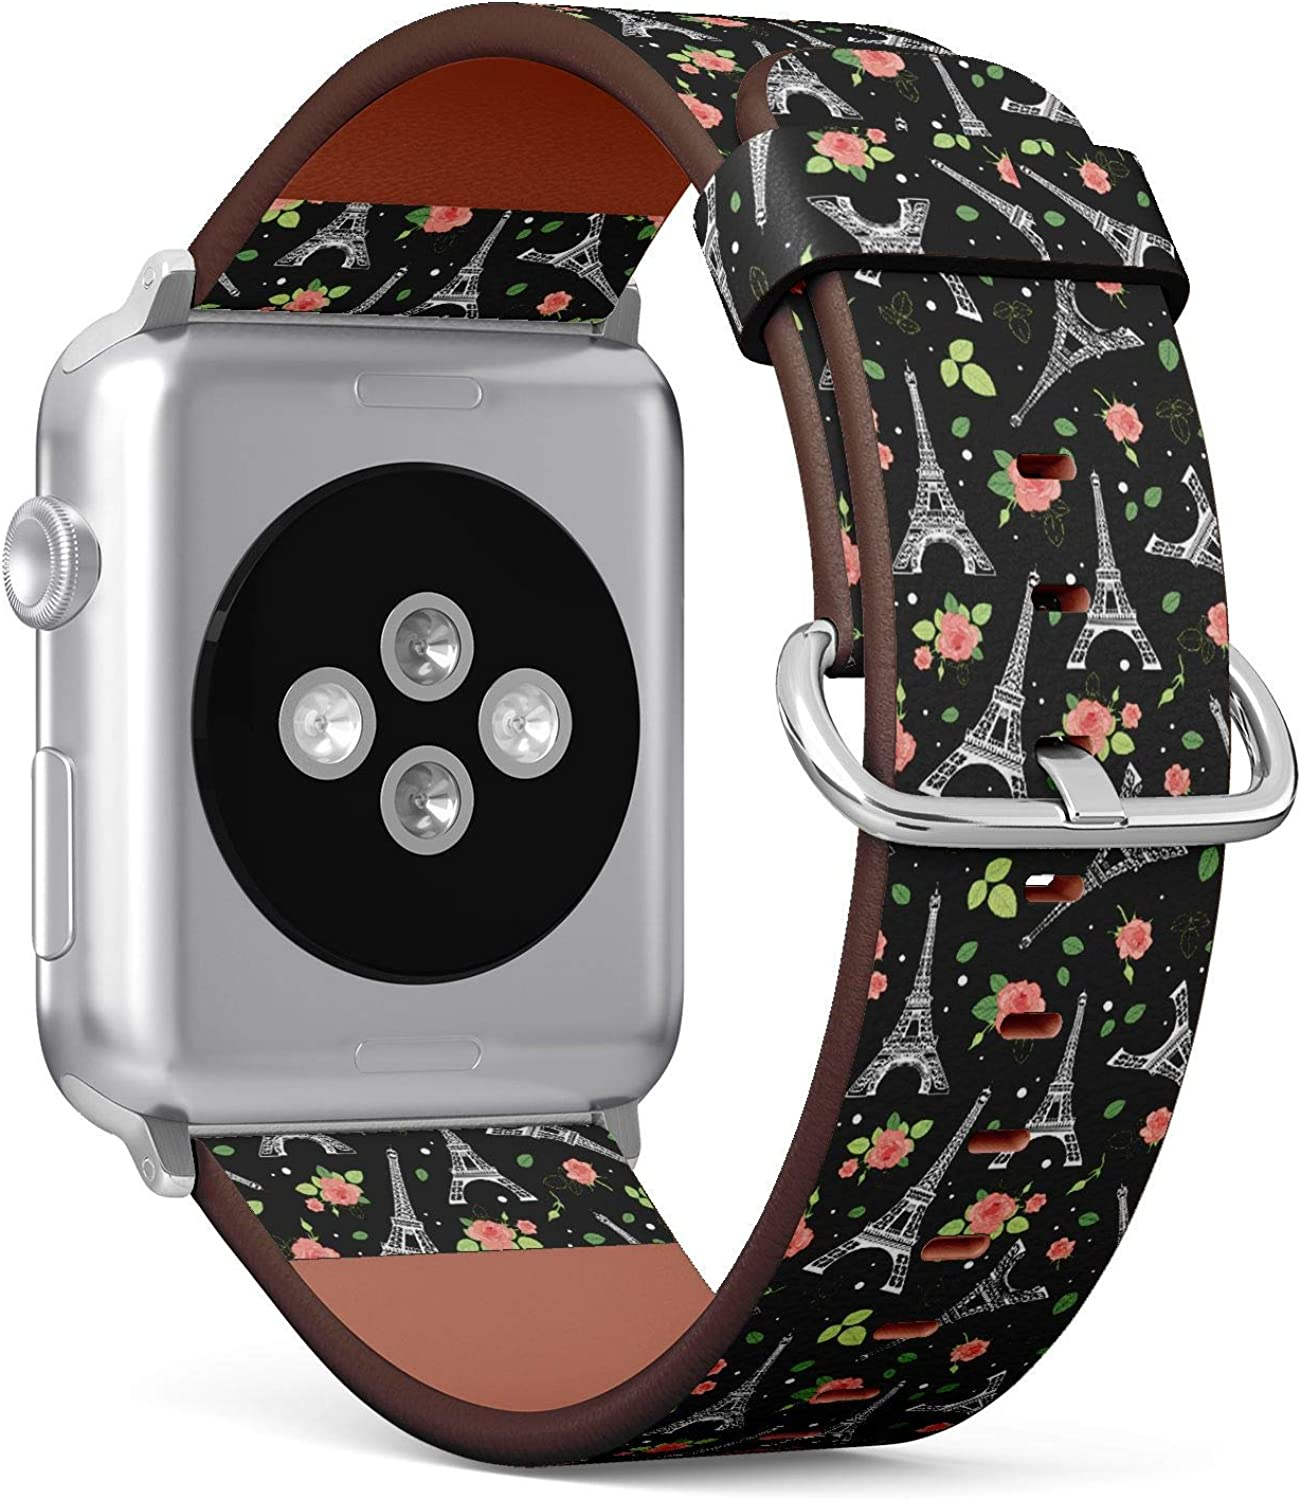 ( Eifel Tower Paris and Roses Flowers Pattern )Patterned Leather Wristband Strap for Apple Watch Series 4/3/2/1 gen ,Replacement for iWatch 38mm / 40mm bands